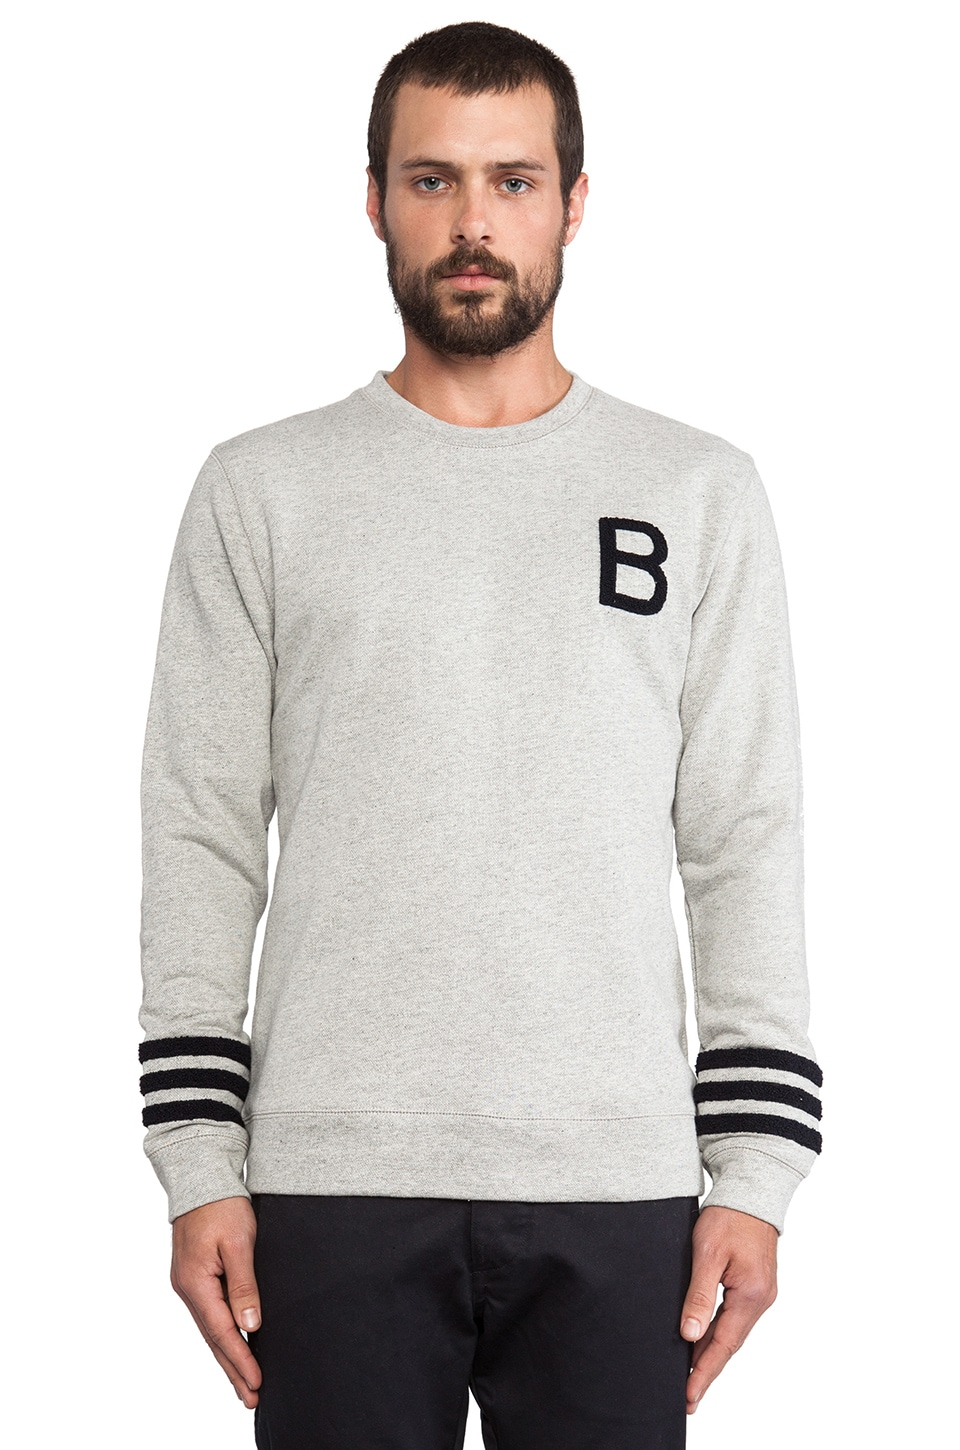 Brooklyn We Go Hard Bay Sweatshirt in Grey